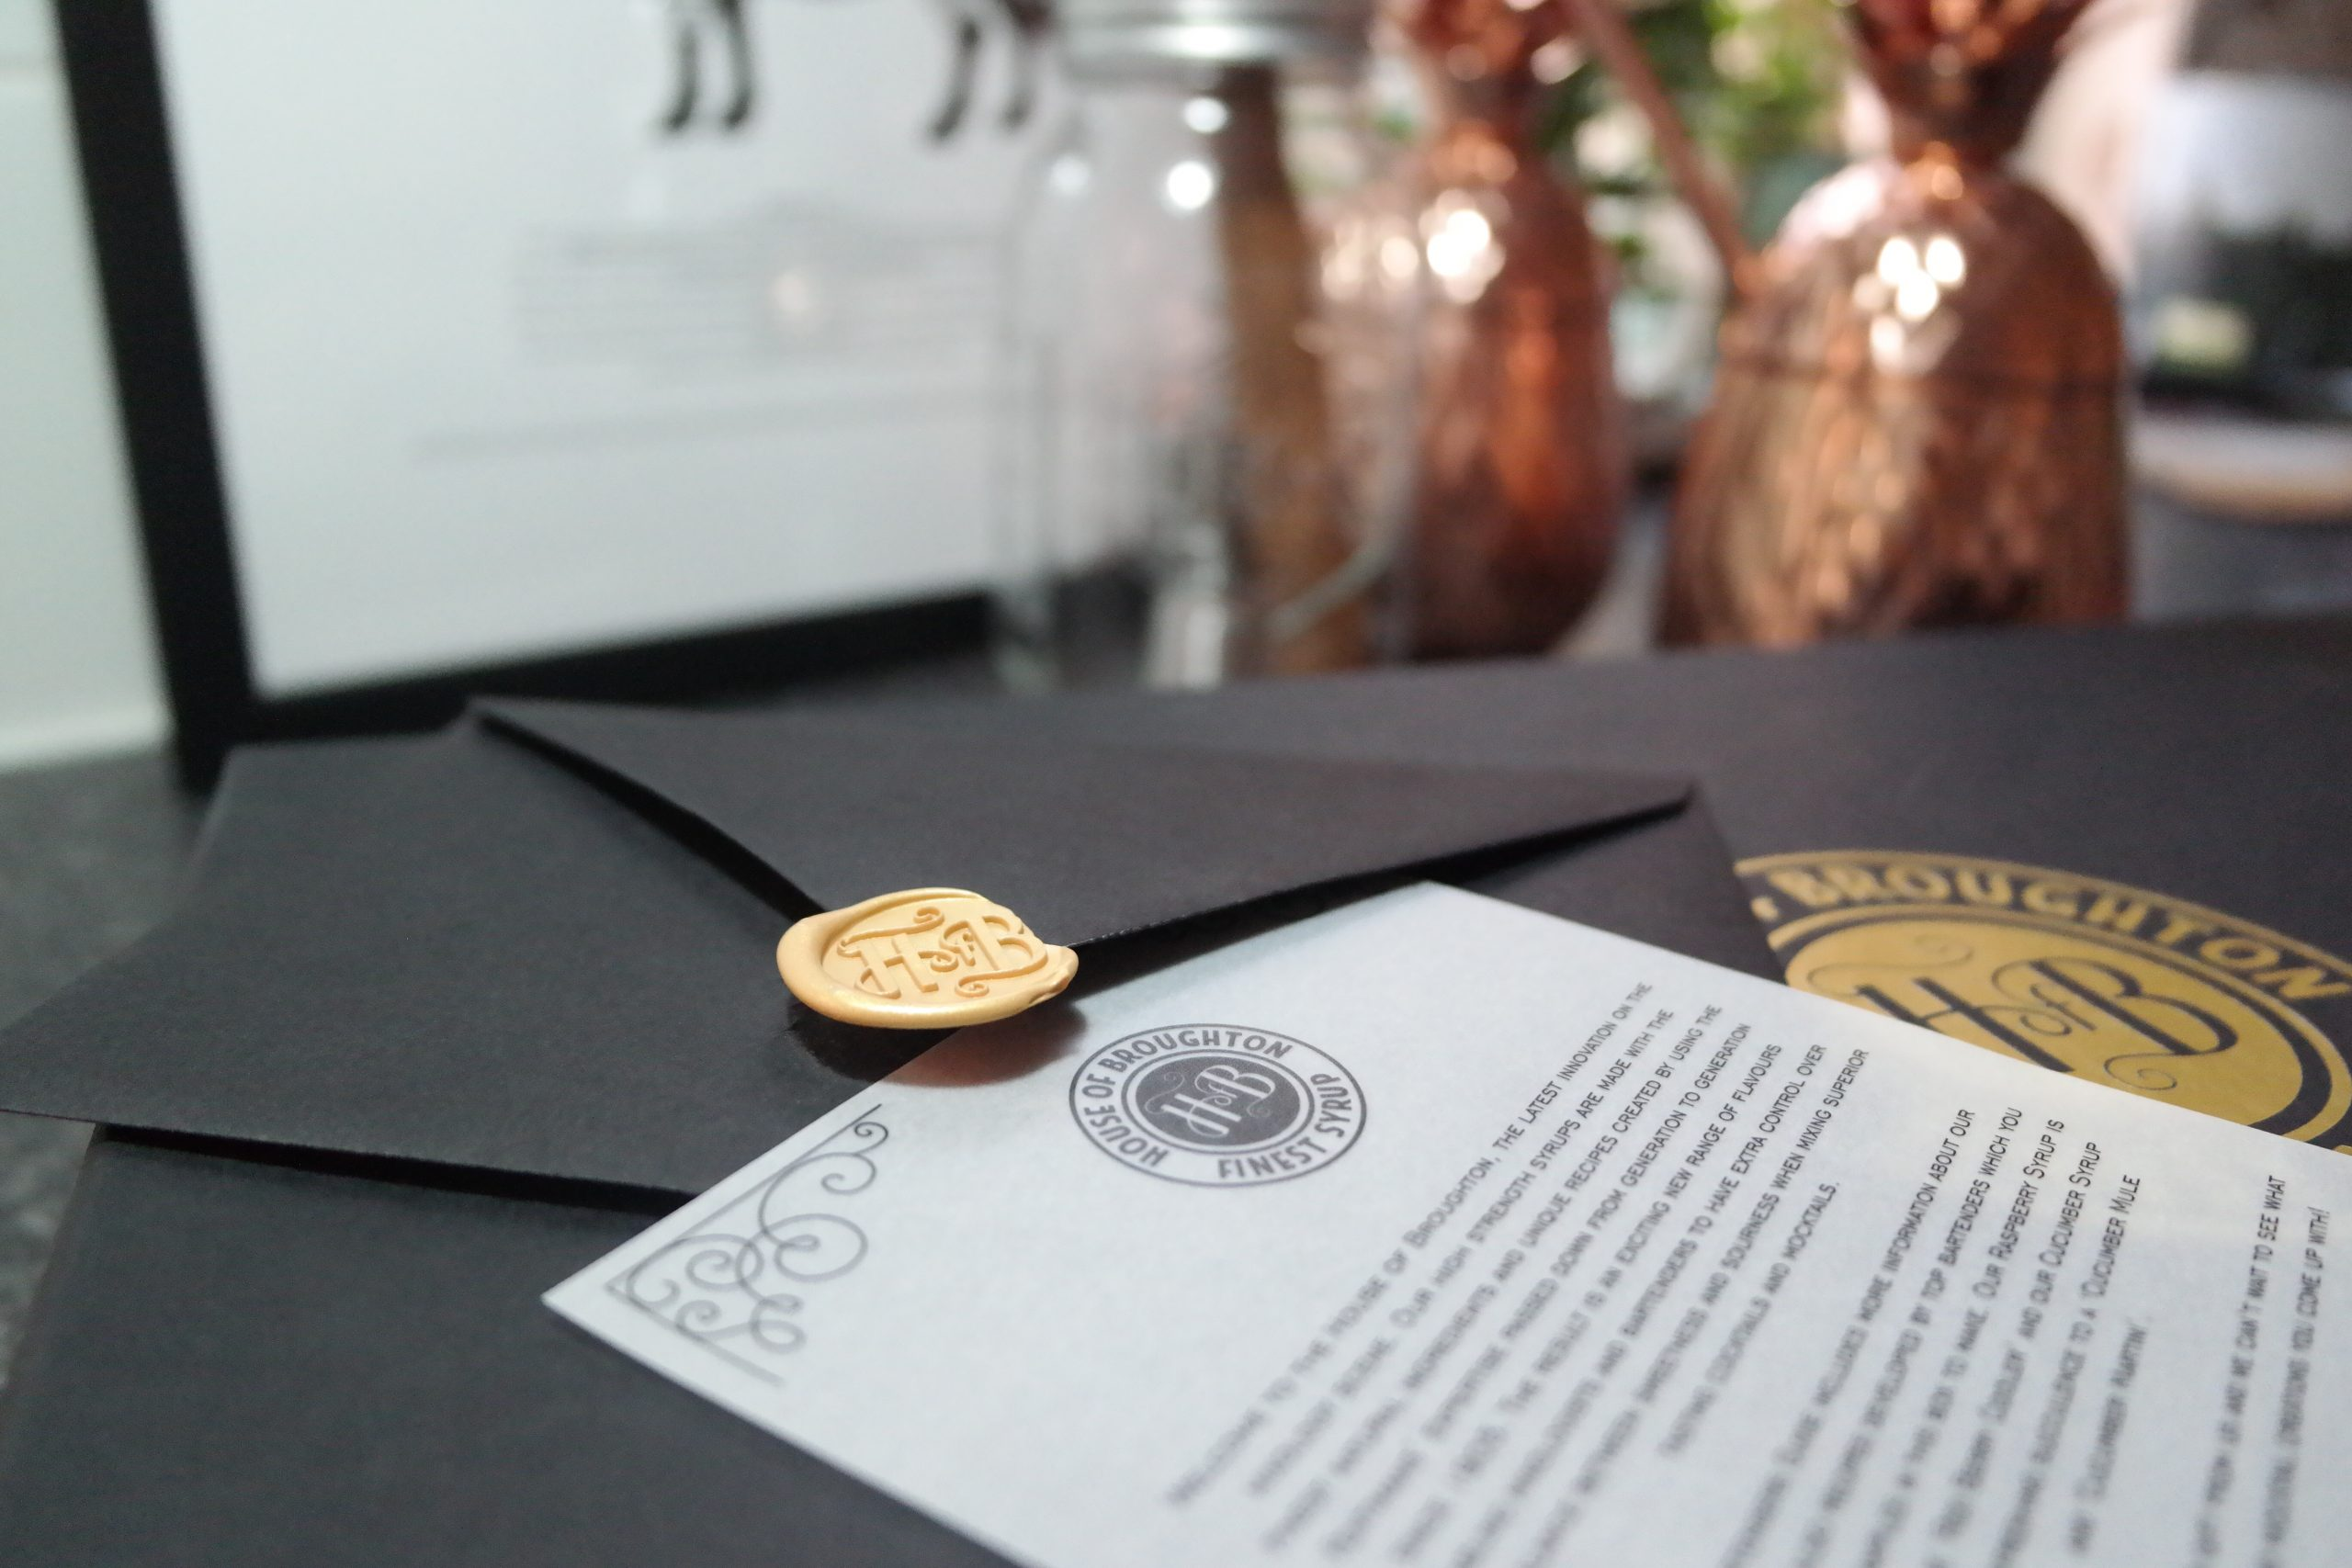 house of broughton syrups fentimans wax seal letter